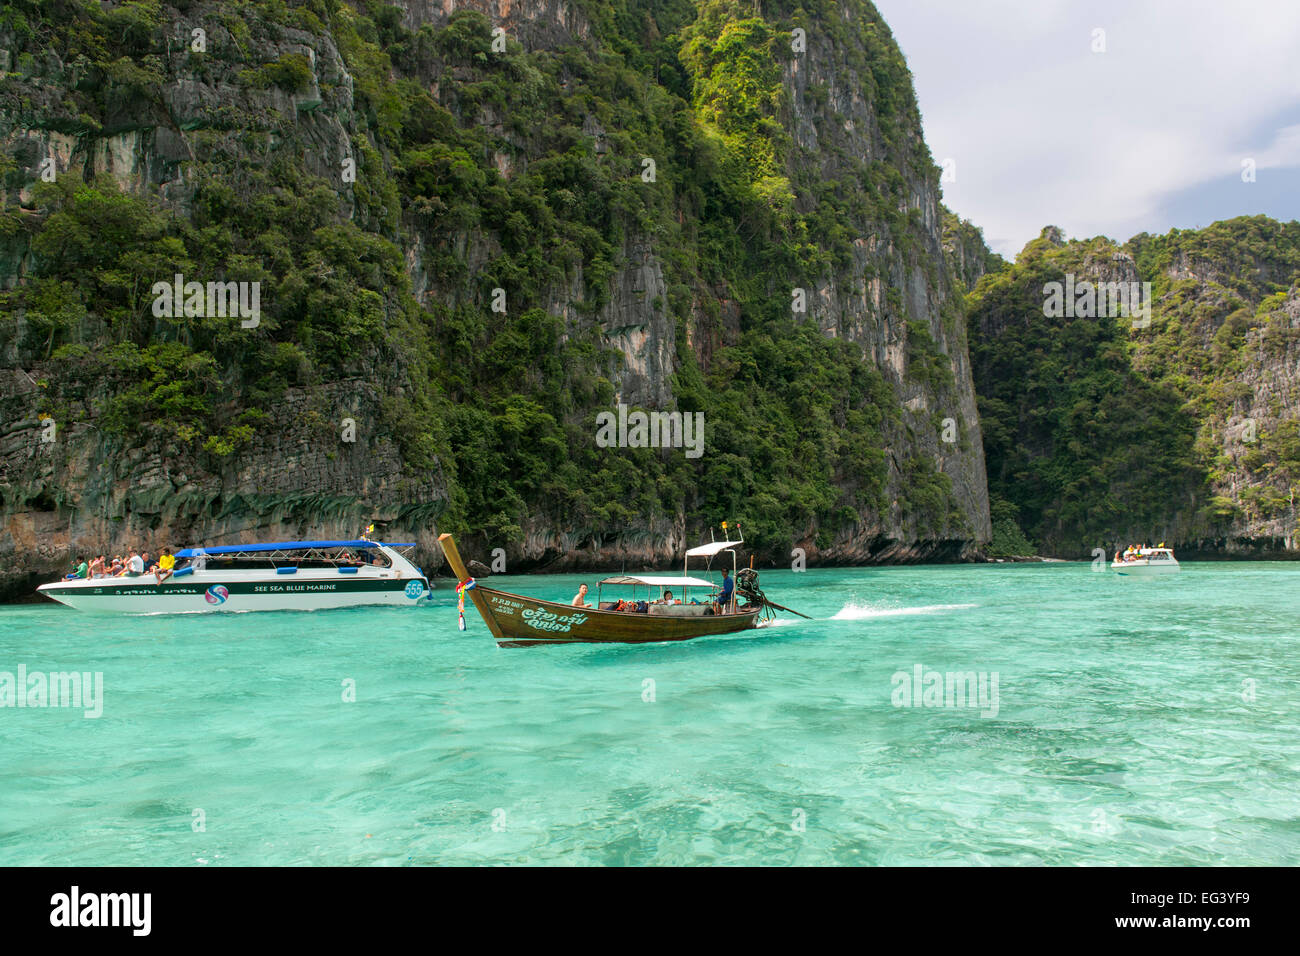 Phi Ley bay, part of Koh Phi Phi Ley island in Thailand. - Stock Image